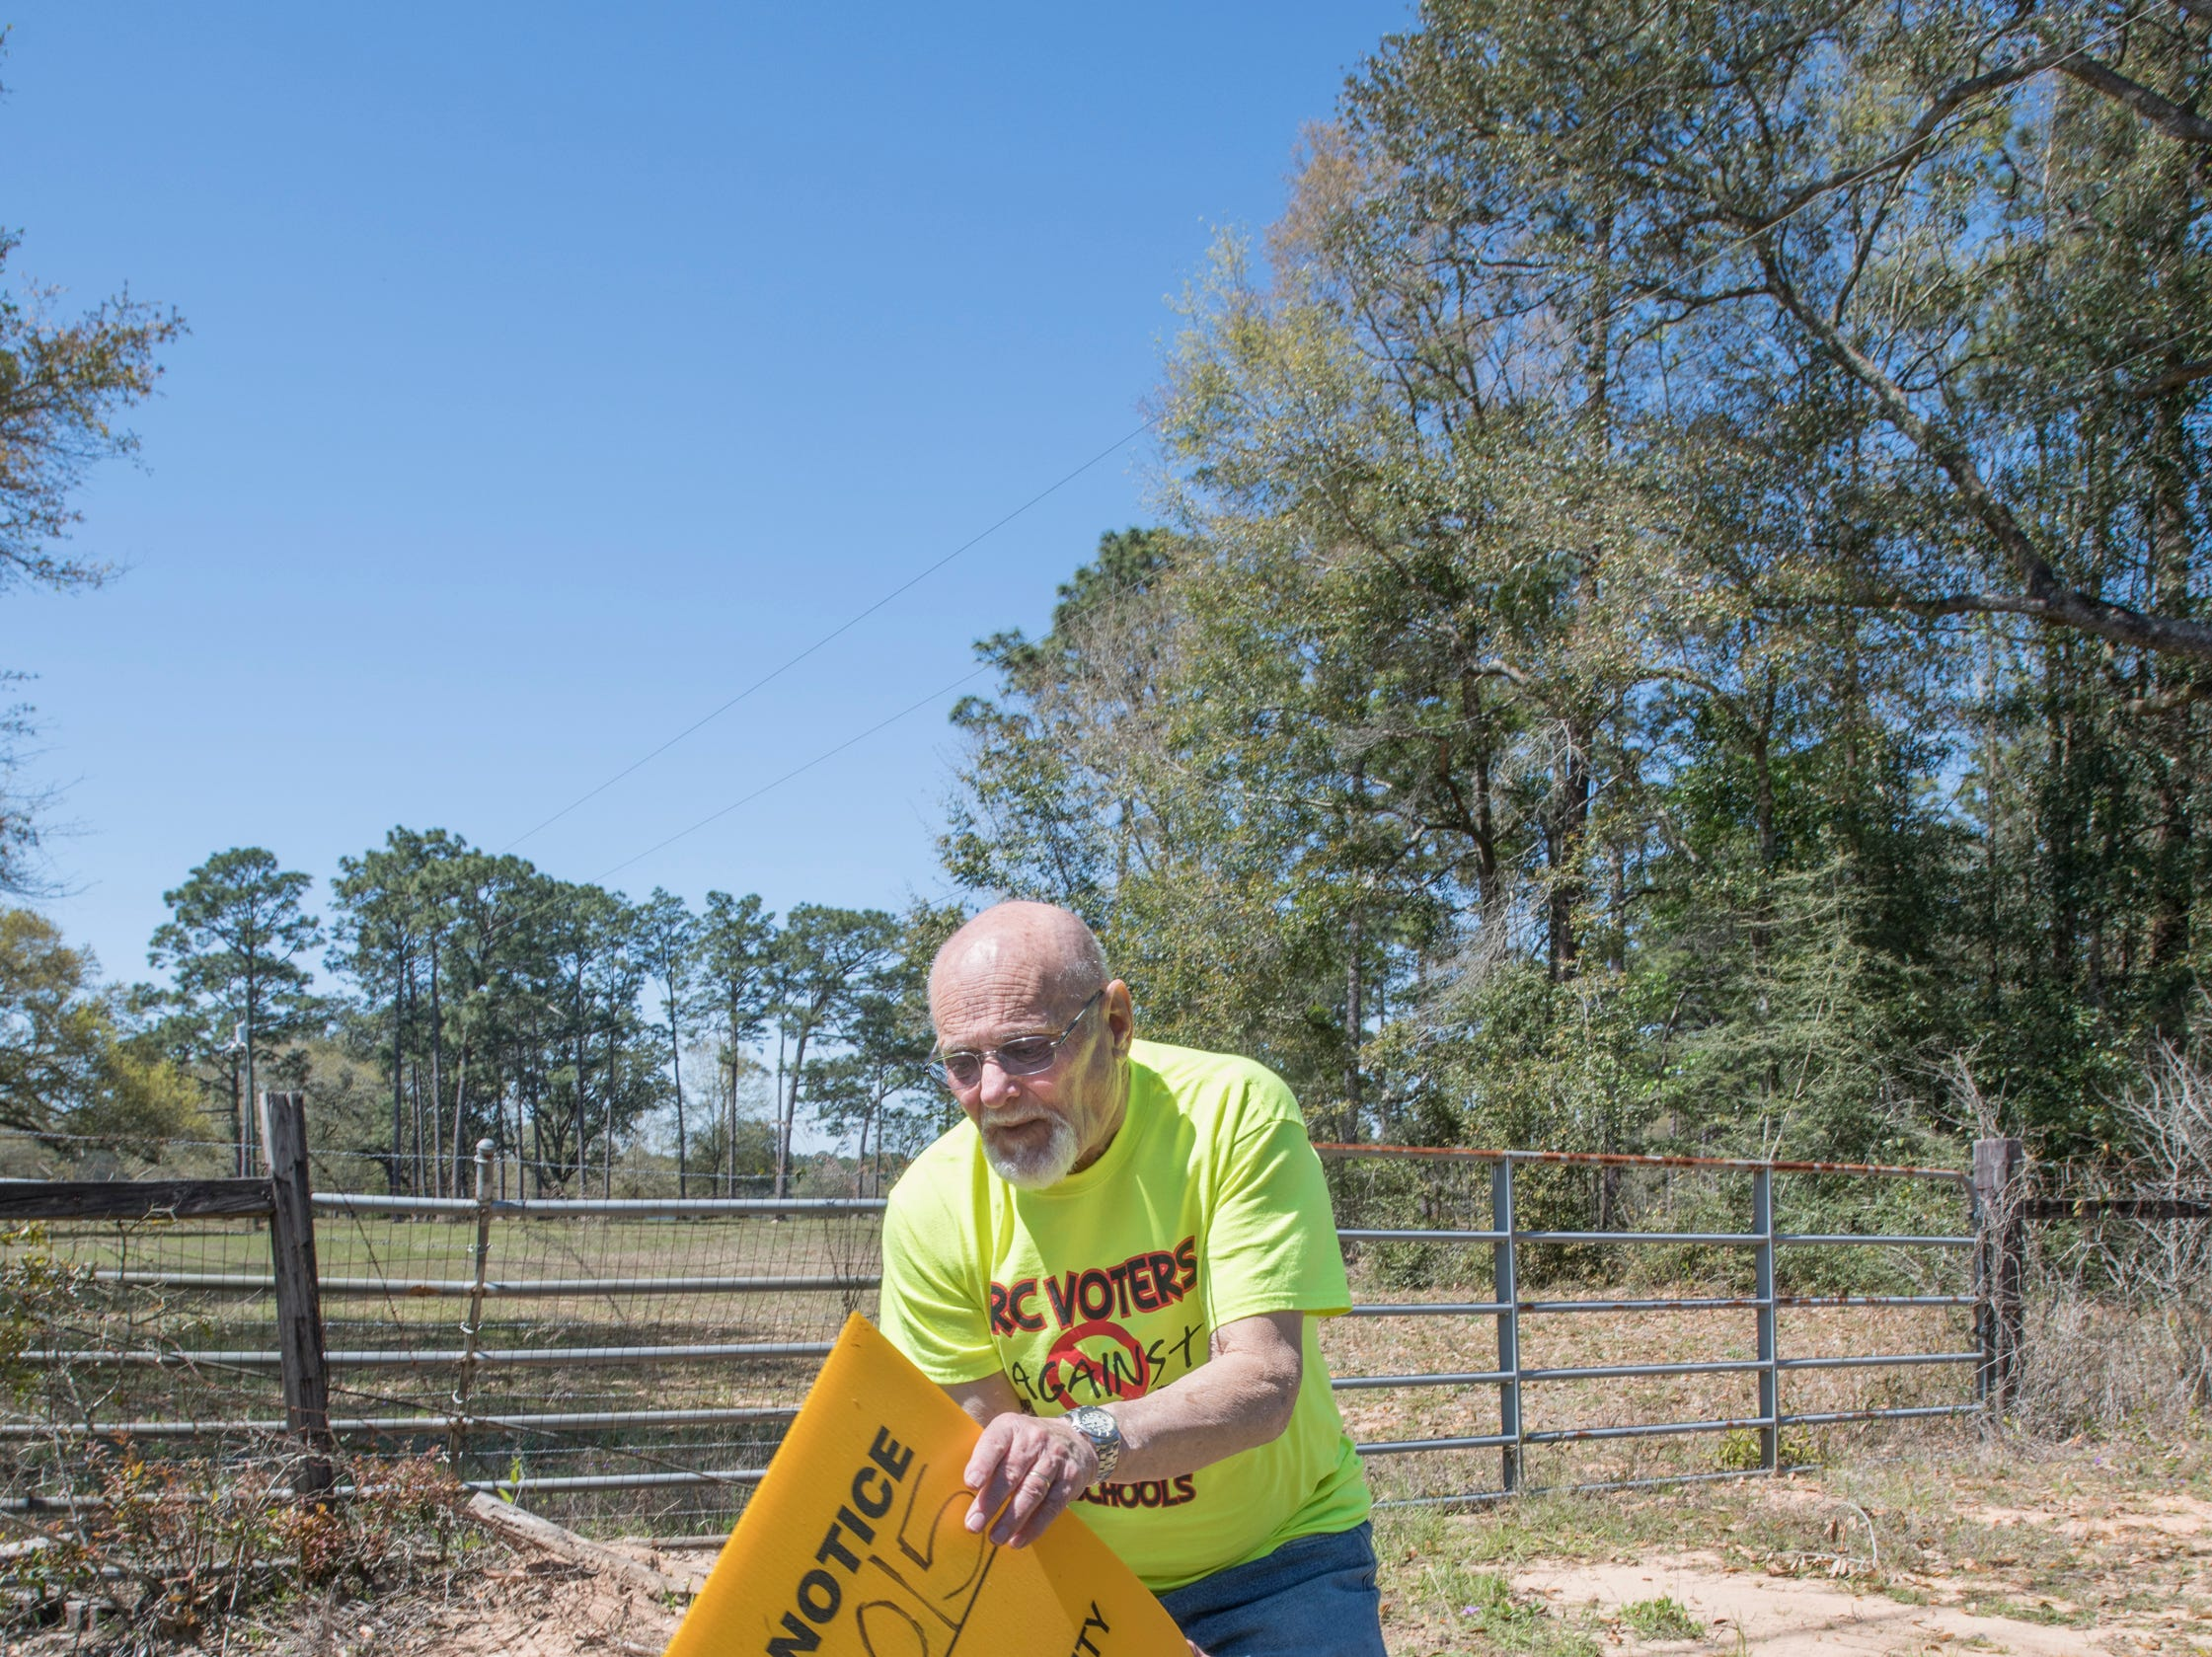 Phil Hoffman, the president of Santa Rosa Voters Against Overcrowded Roads and Schools, picks up a zoning meeting sign along the land where a 726-home subdivision along Woodbine Road is proposed in Pace on Friday, March 22, 2019.  Hoffman explains that the county should reinstate an impact fee so that the proposed subdivision, that would substantially worsen traffic that is already bad, would help fund widening of street.